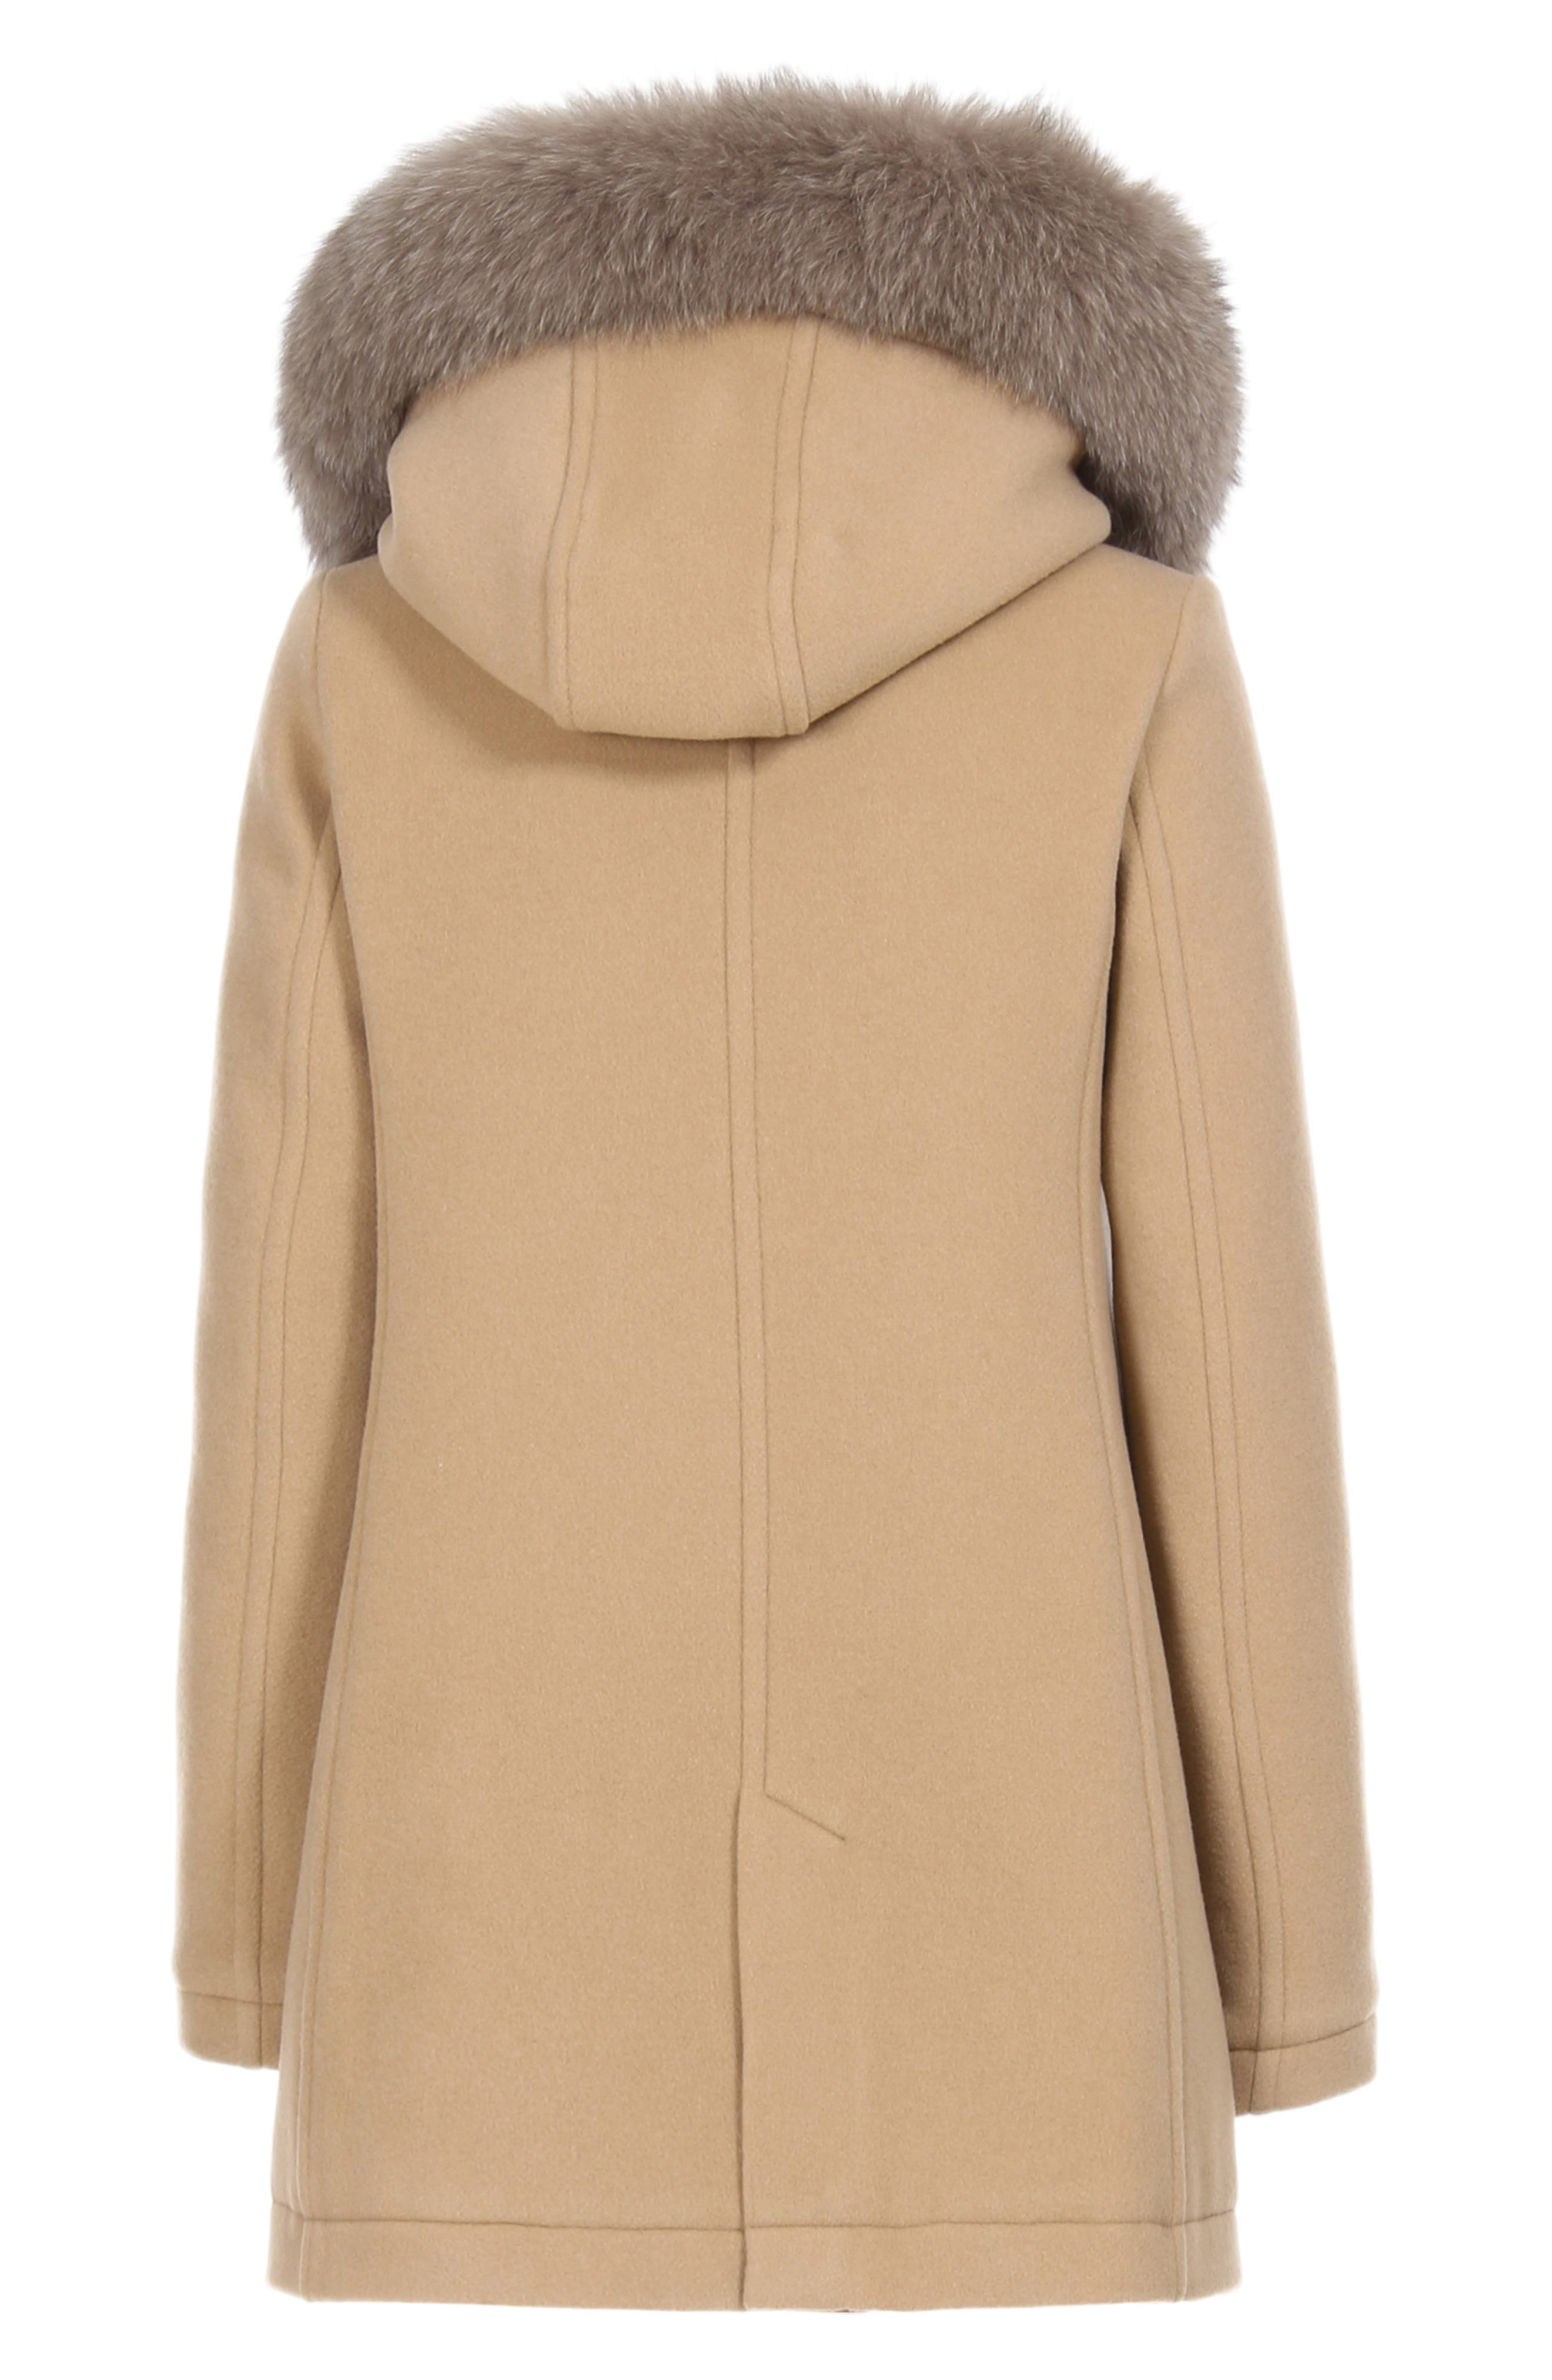 McKenzie Coat with Genuine Fox Fur Trim,                             Alternate thumbnail 8, color,                             CAMEL